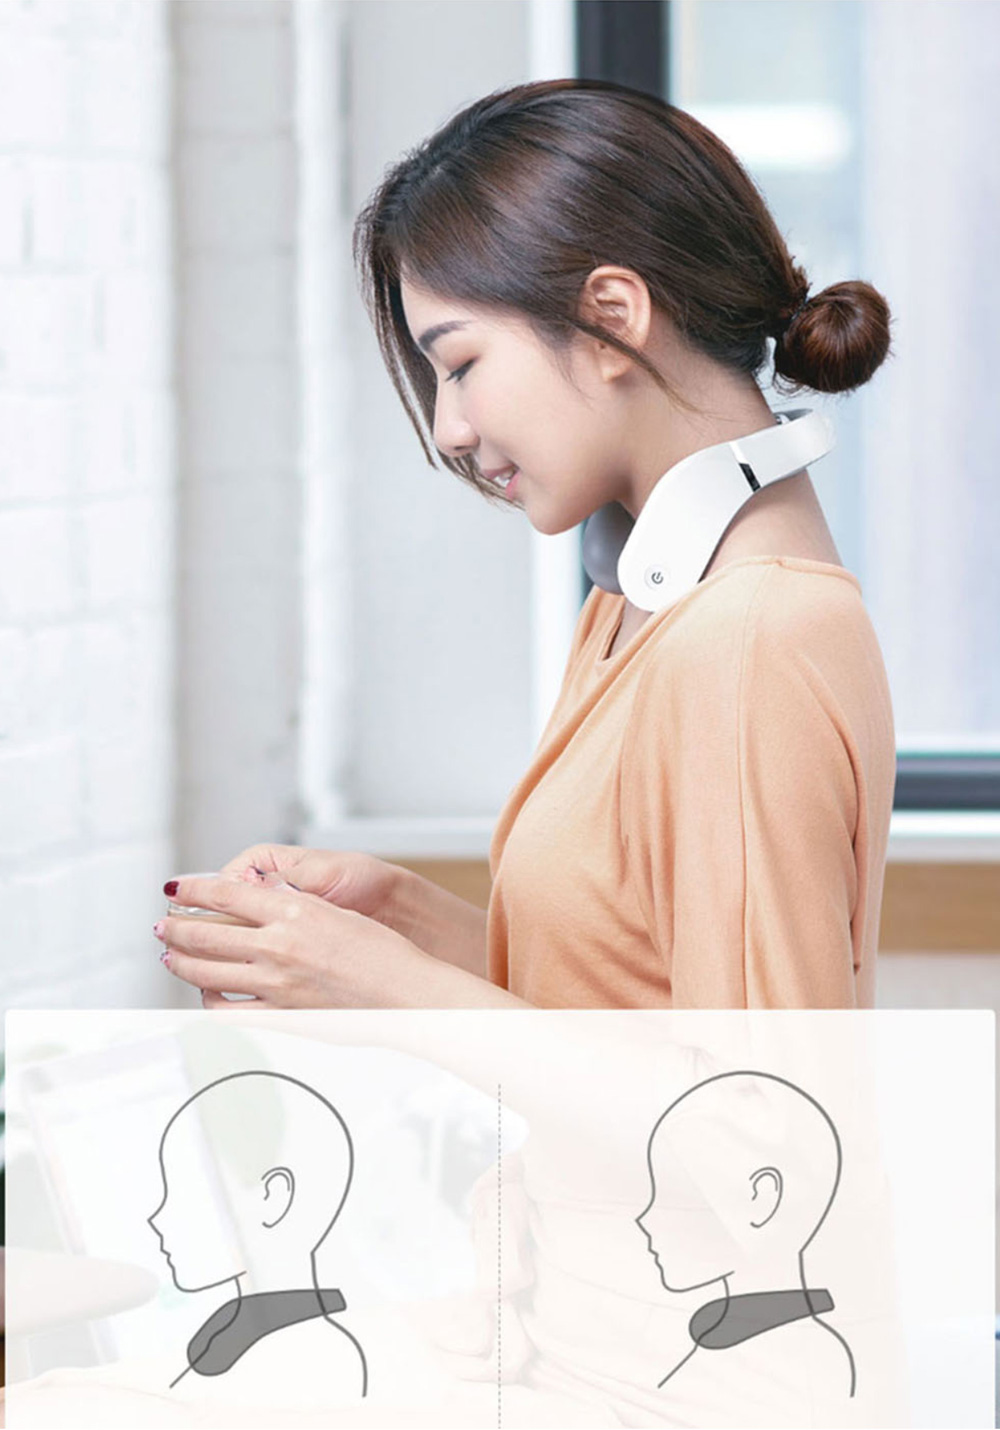 Jeeback G2 L-shaped Neck Massager APP Remote Control 3 Head Infrared Heating Cervical Instrument From Xiaomi Youpin - White